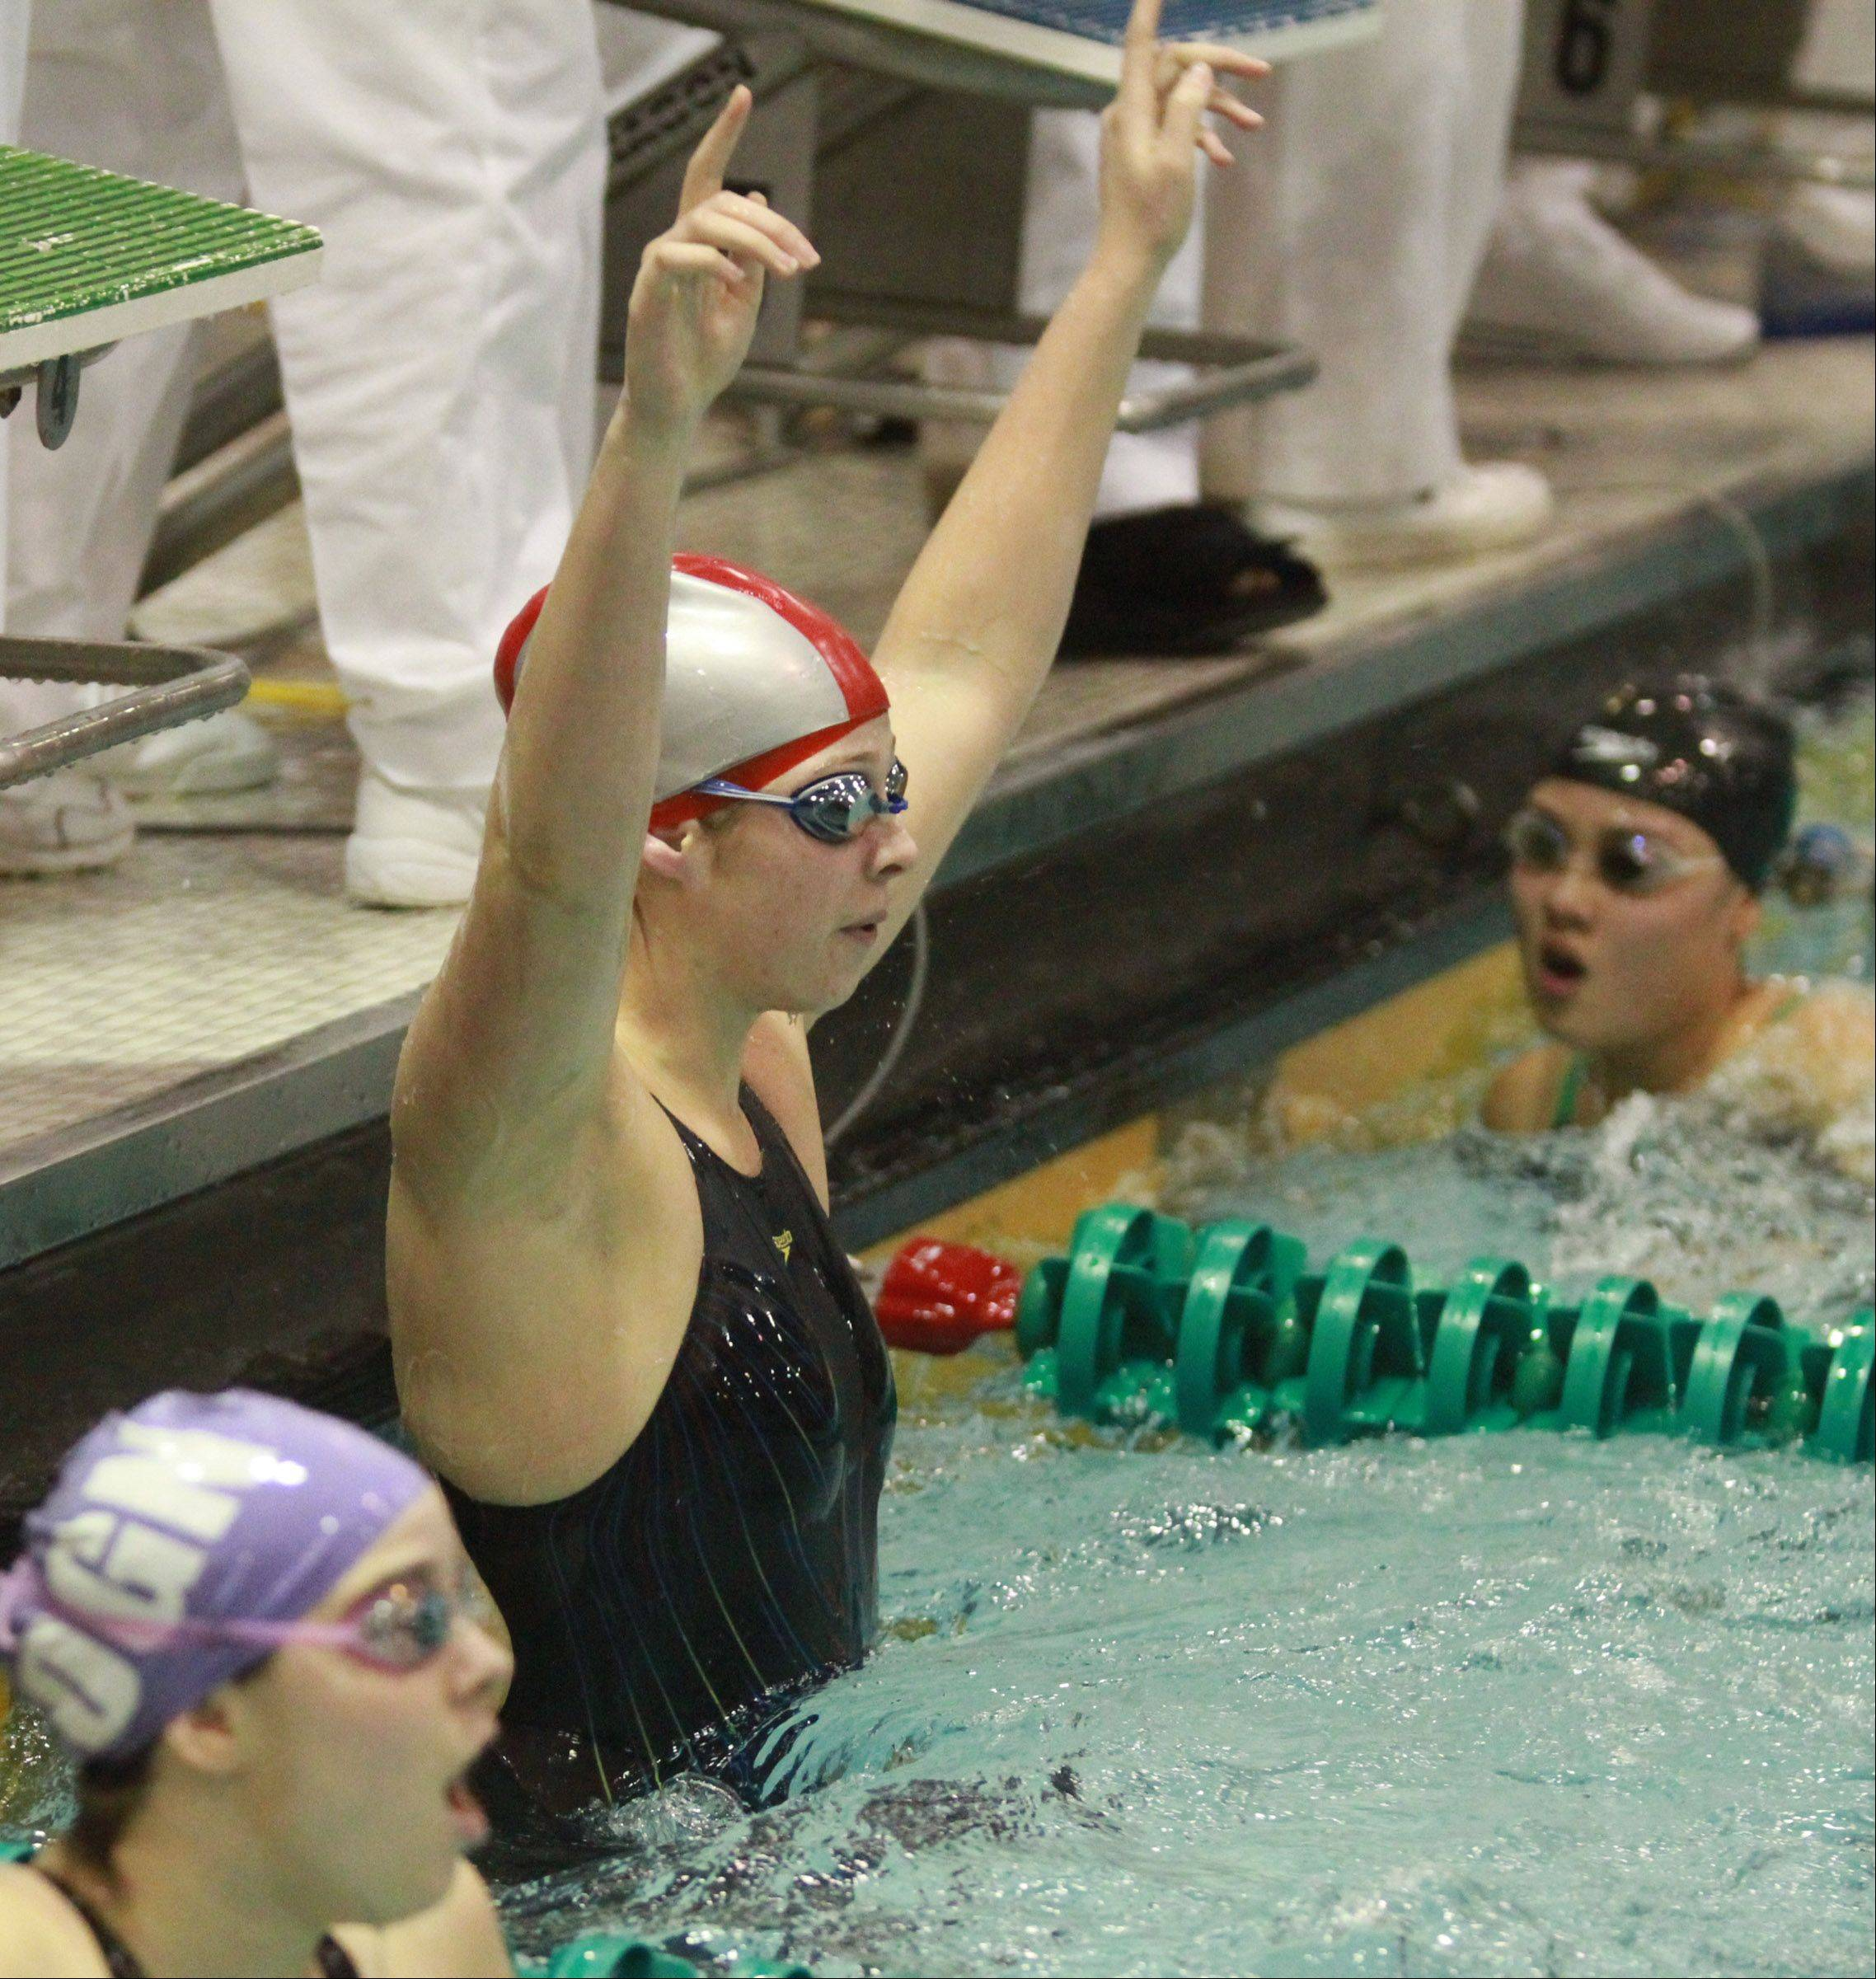 Mundelein's Karrie Kozokar celebrates winning the 200 yard freestyle relay after swimming the final leg in the event at the girls state swimming finals on Saturday in Winnetka.